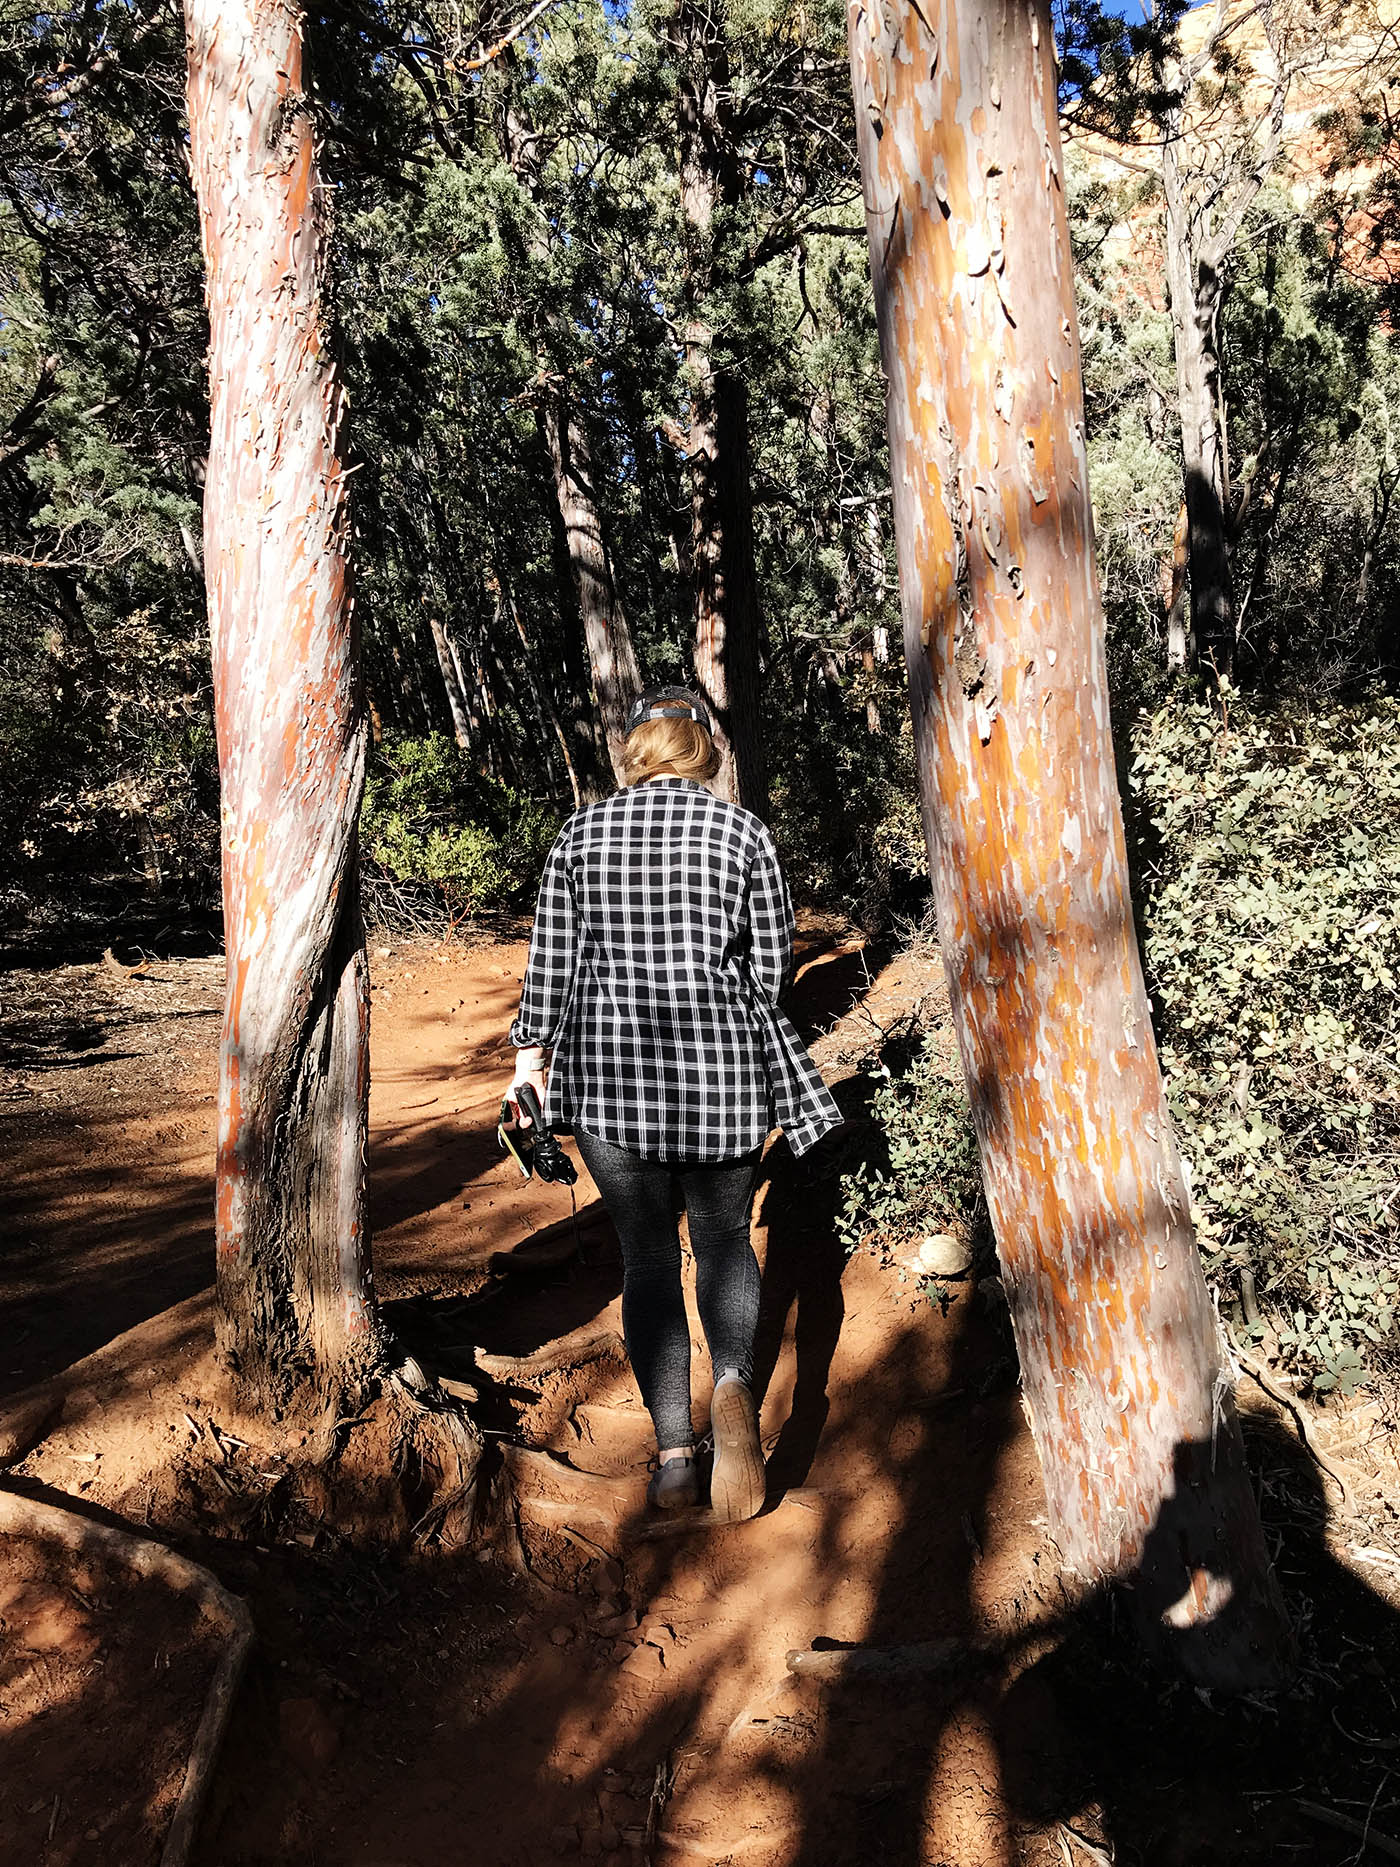 Soldier Pass Trail in Sedona, AZ - see the Devils Kitchen Sinkhole, Seven Sacred Pools, and Arches below Brins Mesa